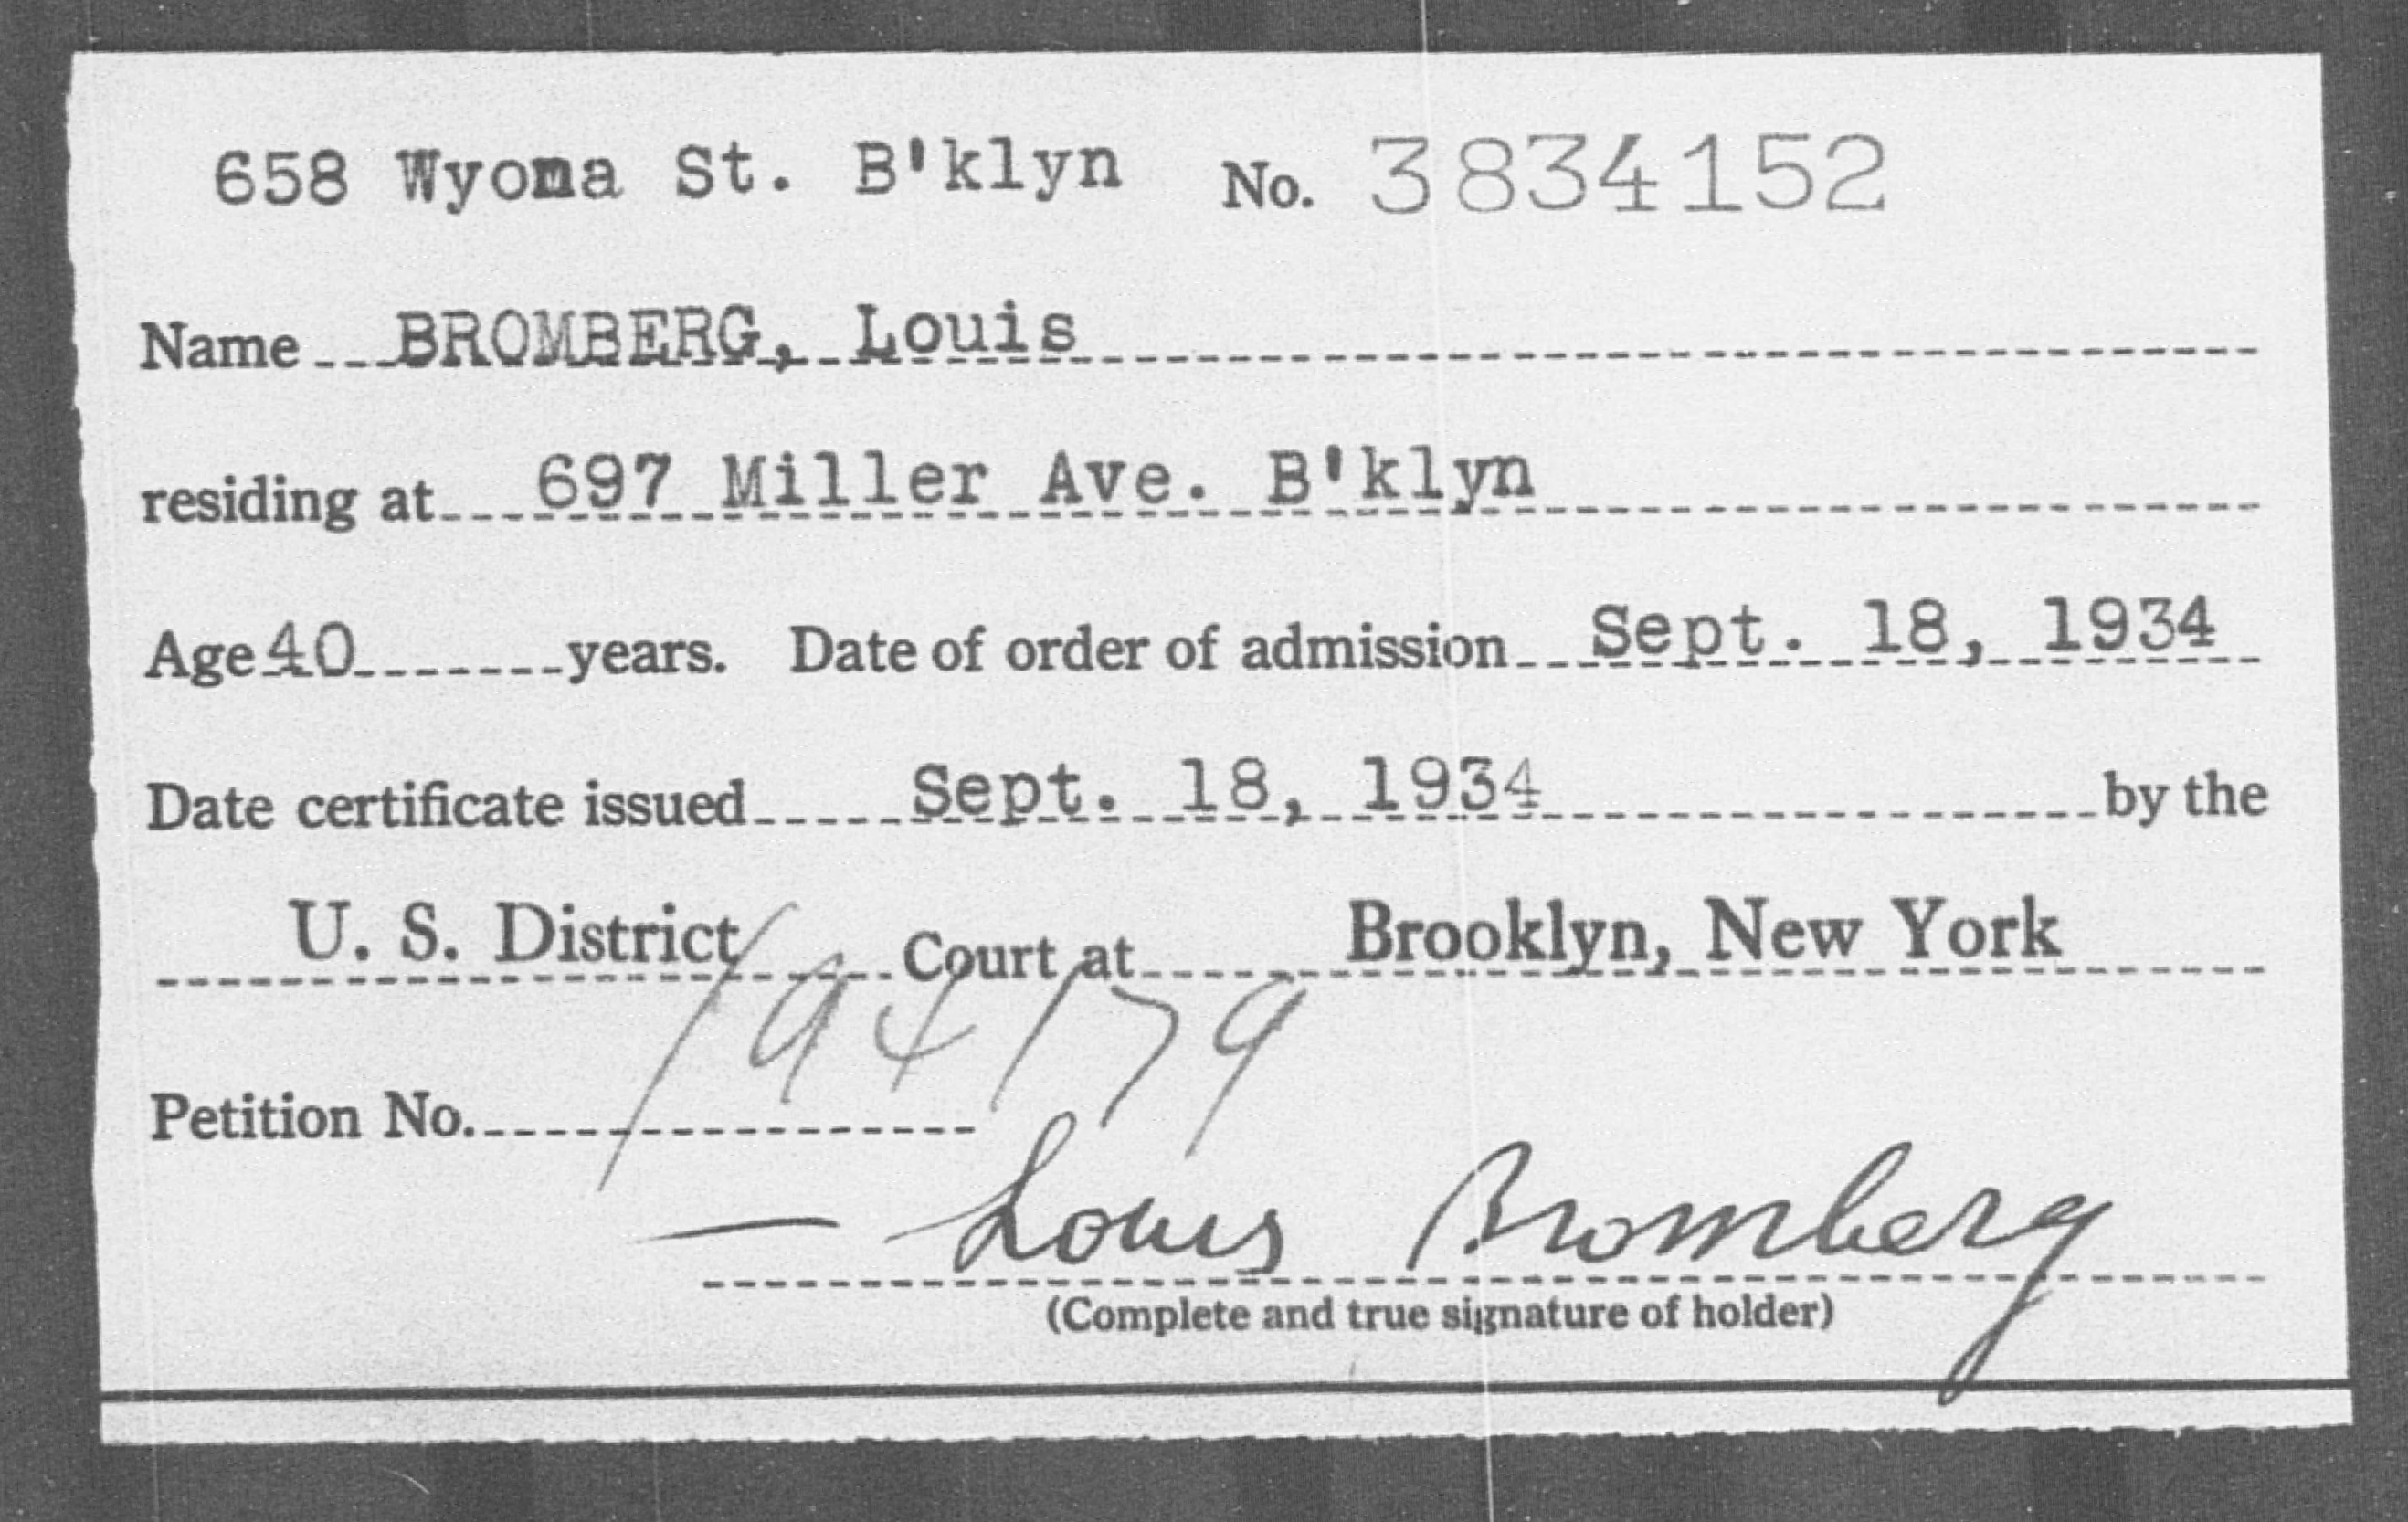 BROMBERG, Louis - Born: [BLANK], Naturalized: 1934